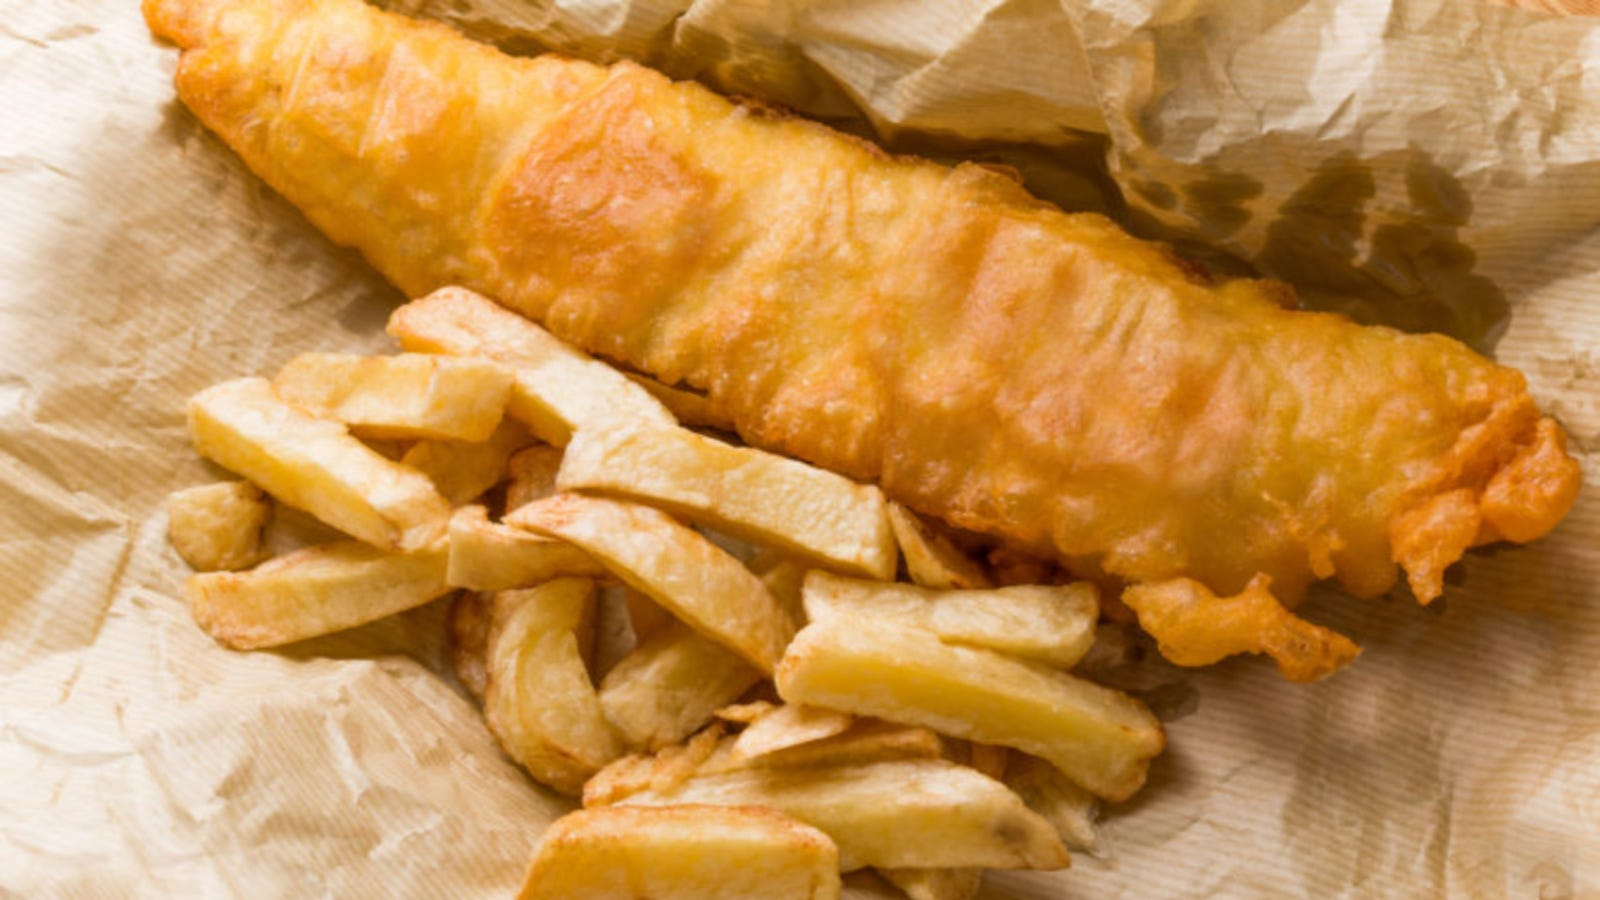 Fish and chips on brown parchment paper.